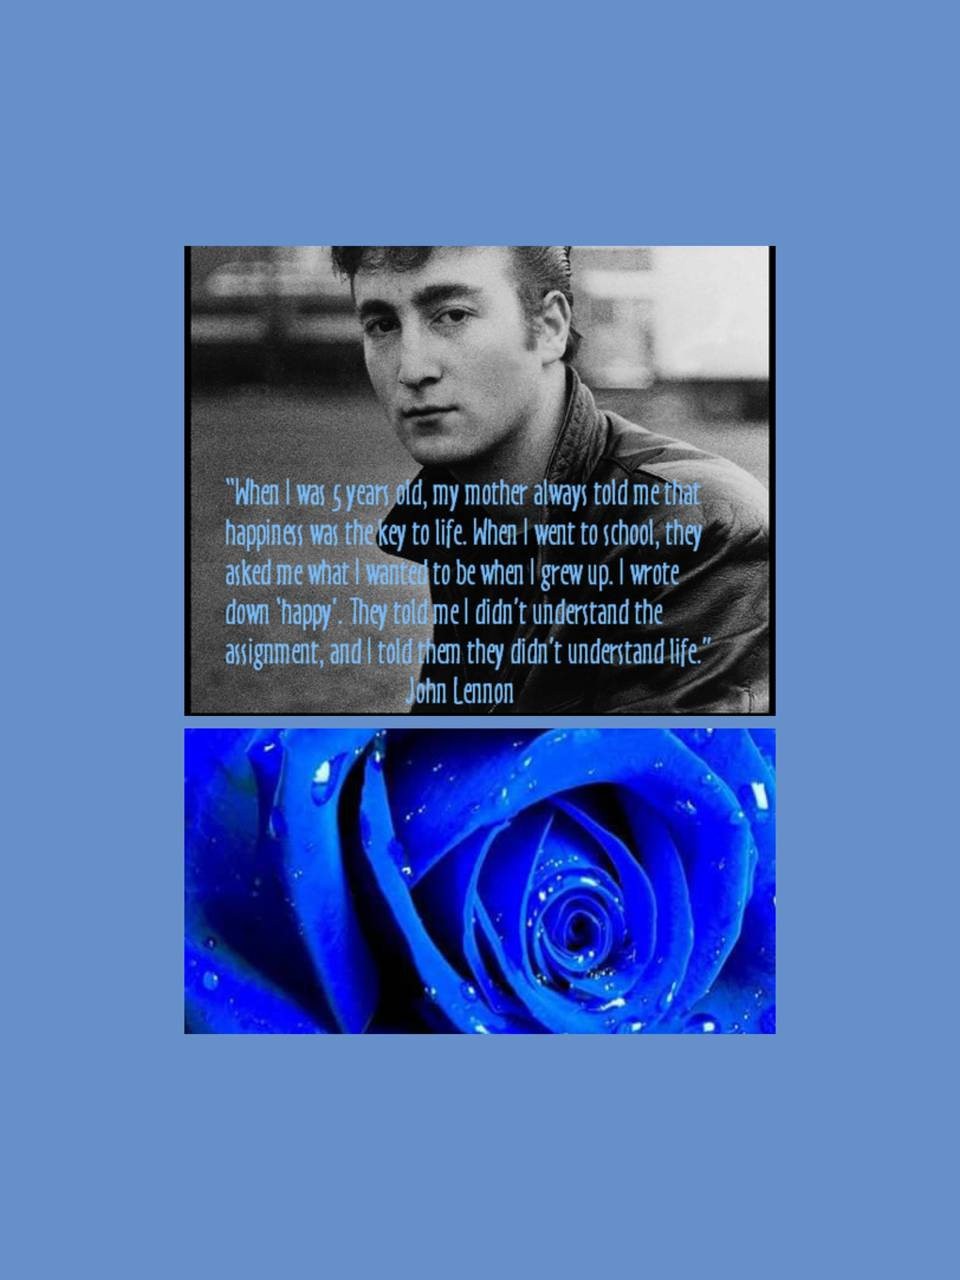 John Lennon Quote Wallpaper By Brealbready 59 Free On Zedge